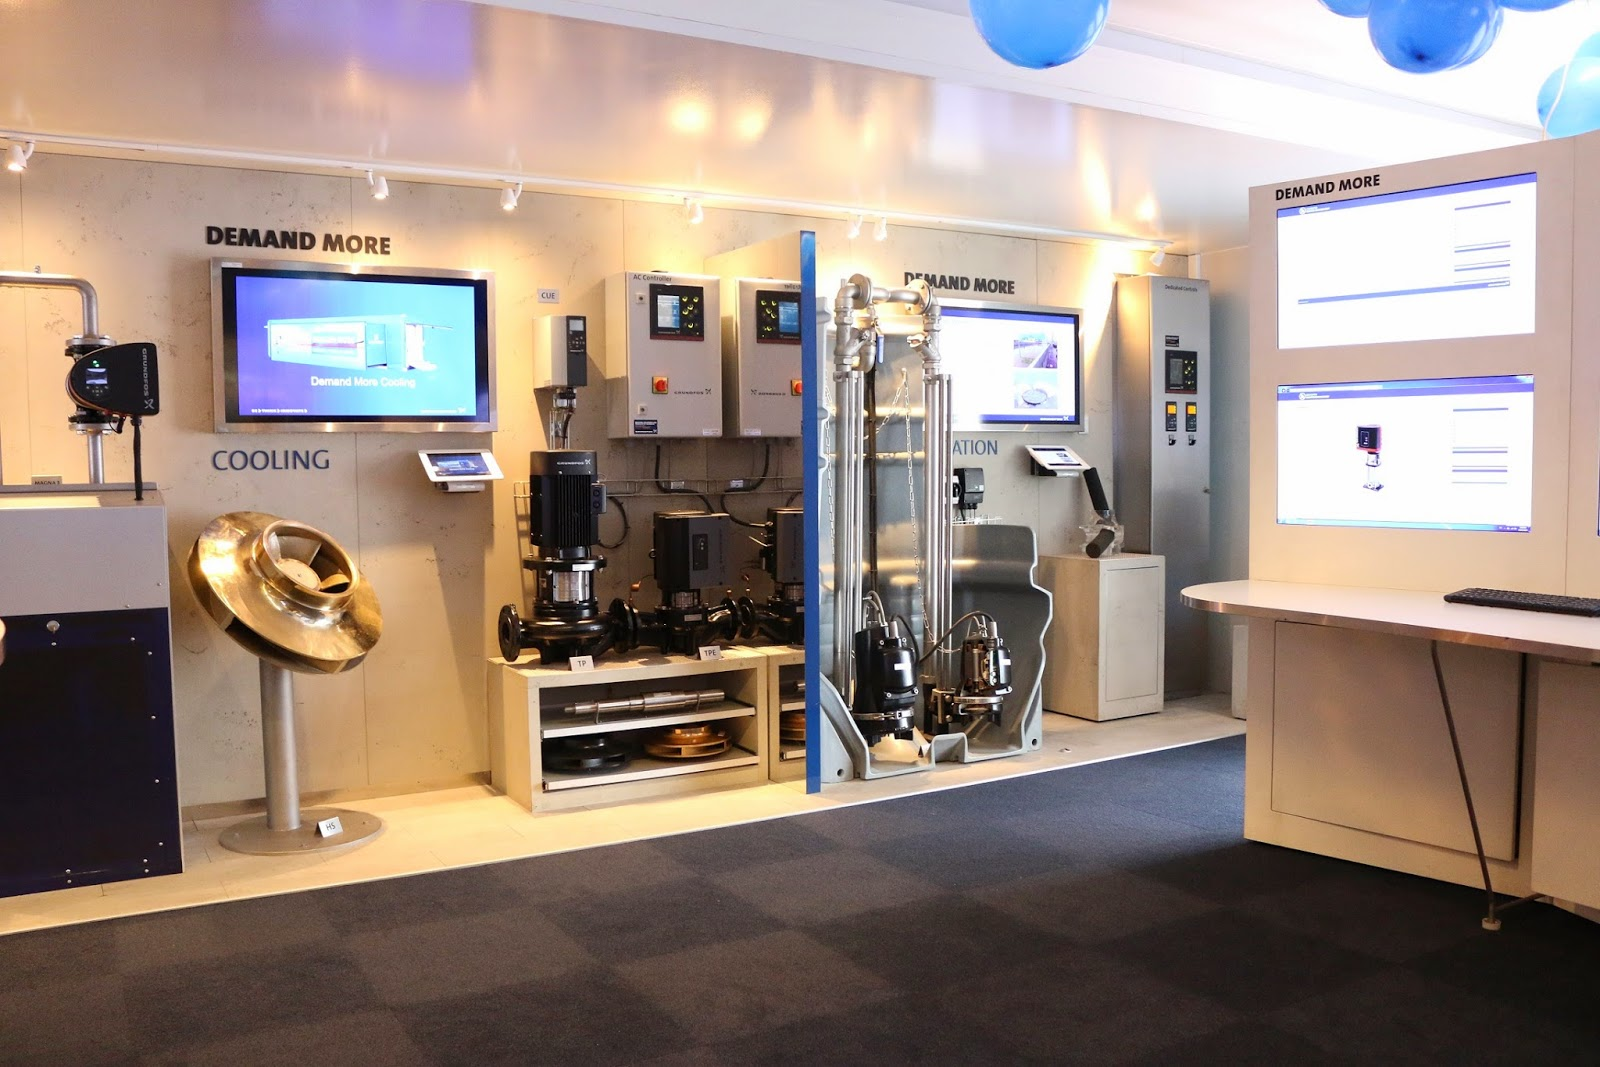 DEMAND MORE MOBILE SHOWROOM CAMPAIGN BY GRUNDFOS PUMPS INDIA